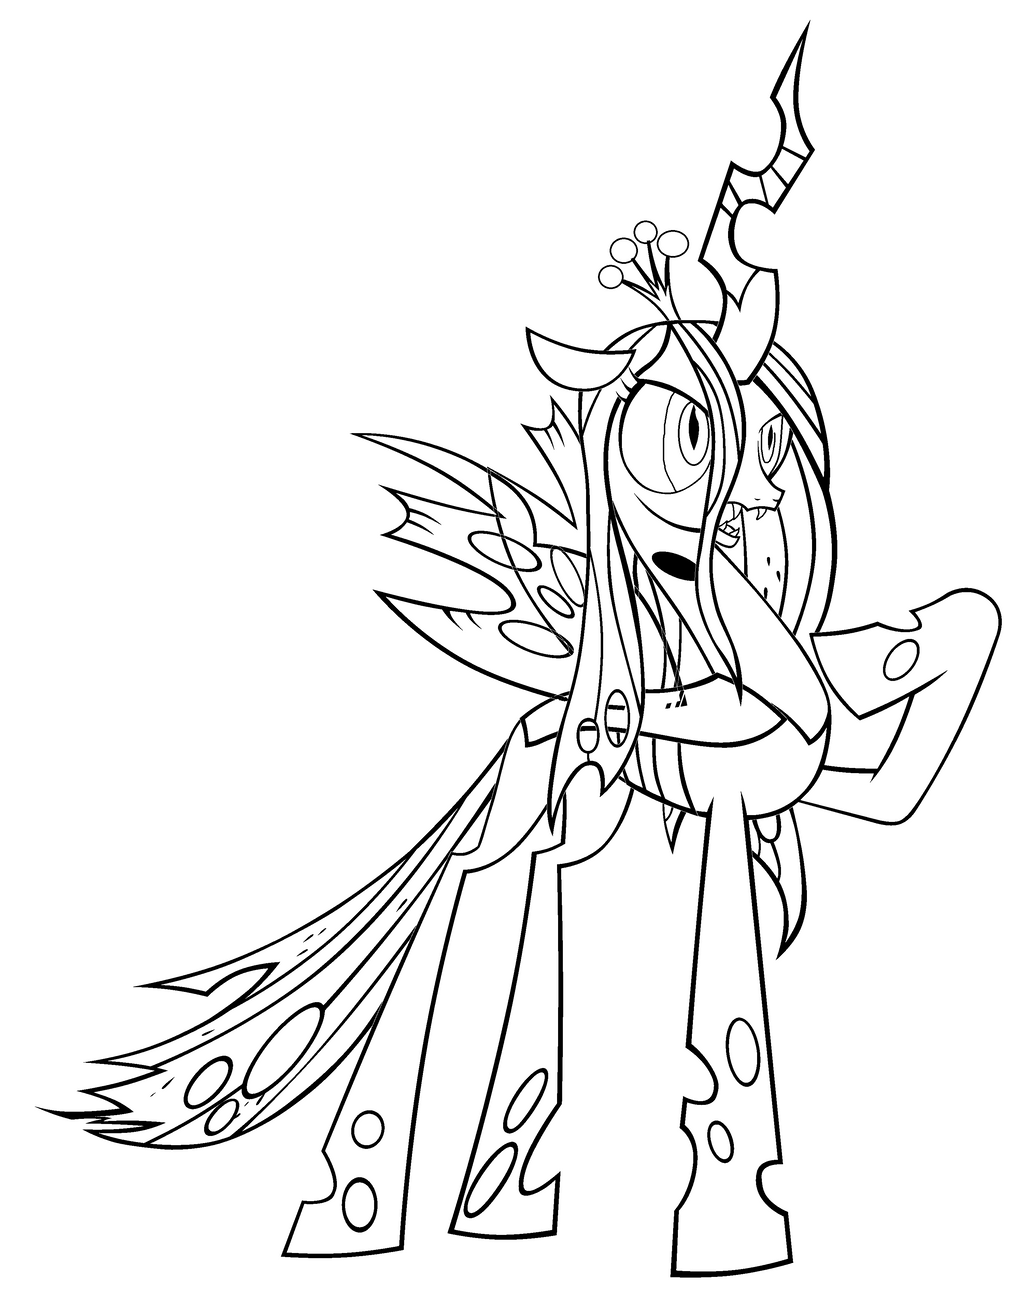 My Little Pony Queen Coloring Pages : My little pony queen chrysalis coloring pages imgkid